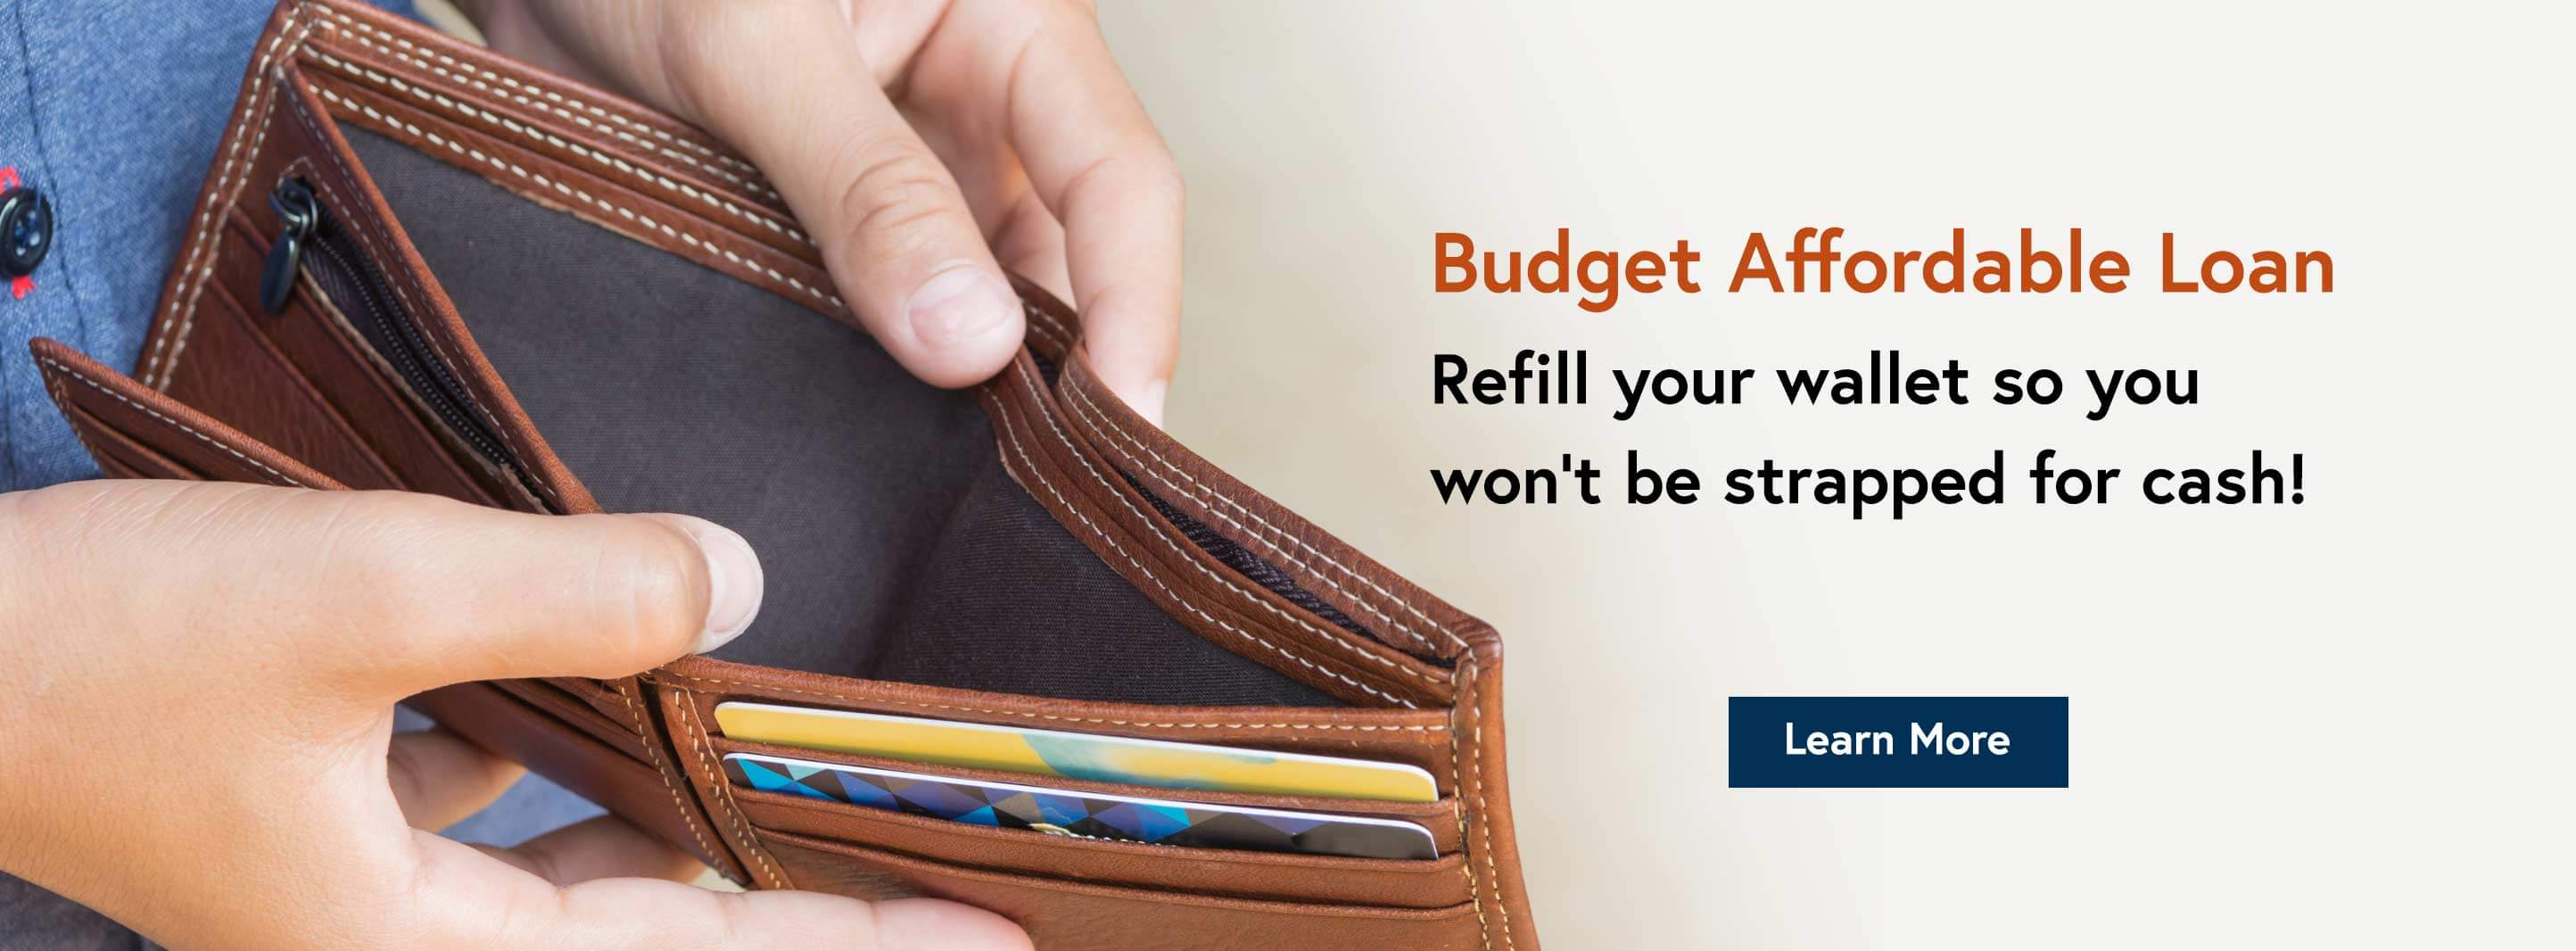 Budget Affordable Loan. Refill your wallet so you won't be strapped for cash! Learn More.